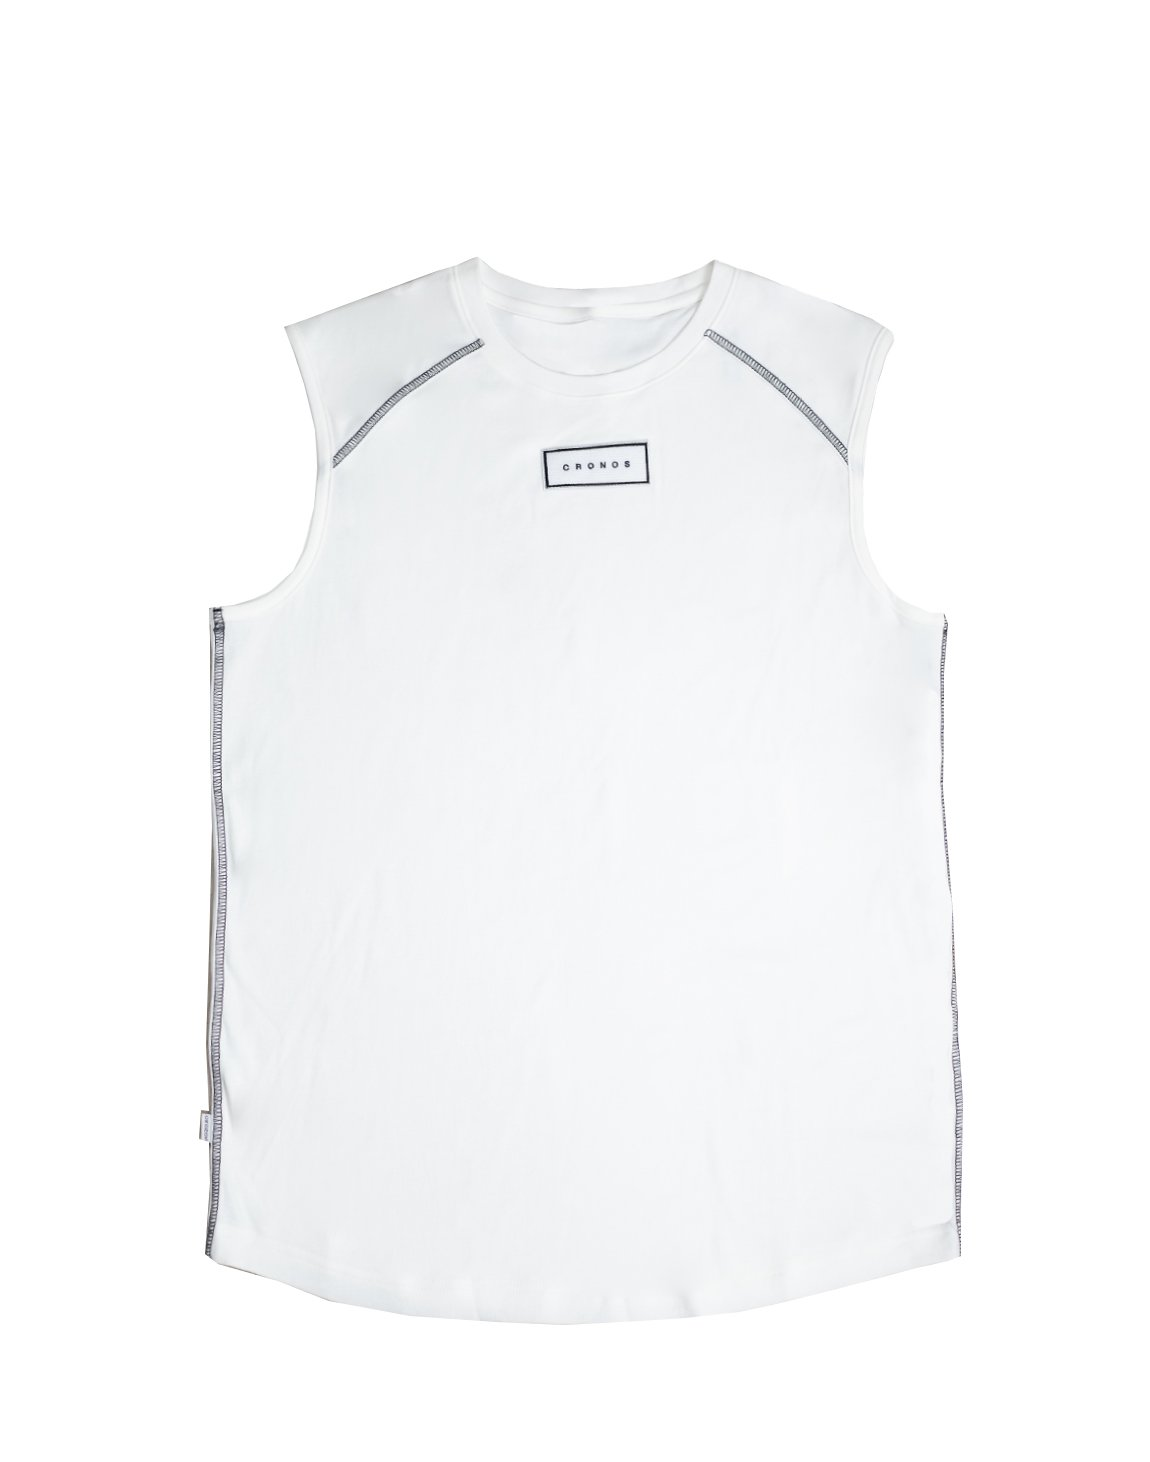 <img class='new_mark_img1' src='https://img.shop-pro.jp/img/new/icons1.gif' style='border:none;display:inline;margin:0px;padding:0px;width:auto;' />FRONT PATCH LOGO SLEEVELESS【WHITE】